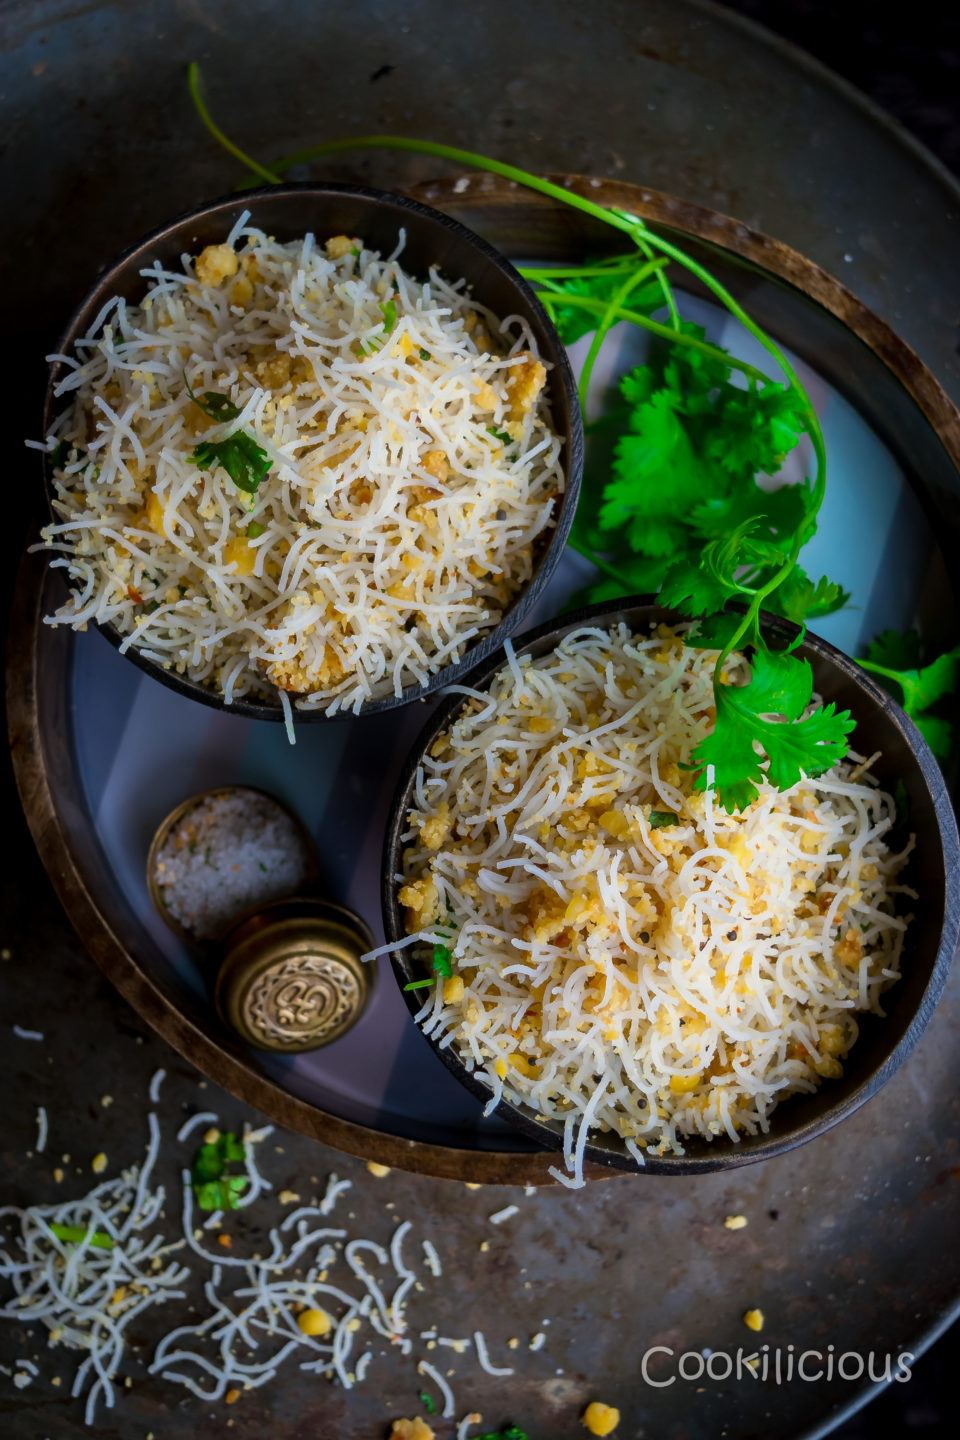 two bowls of Lentil & Rice Noodles | Paruppu Sevai in bowls placed in a round tray.